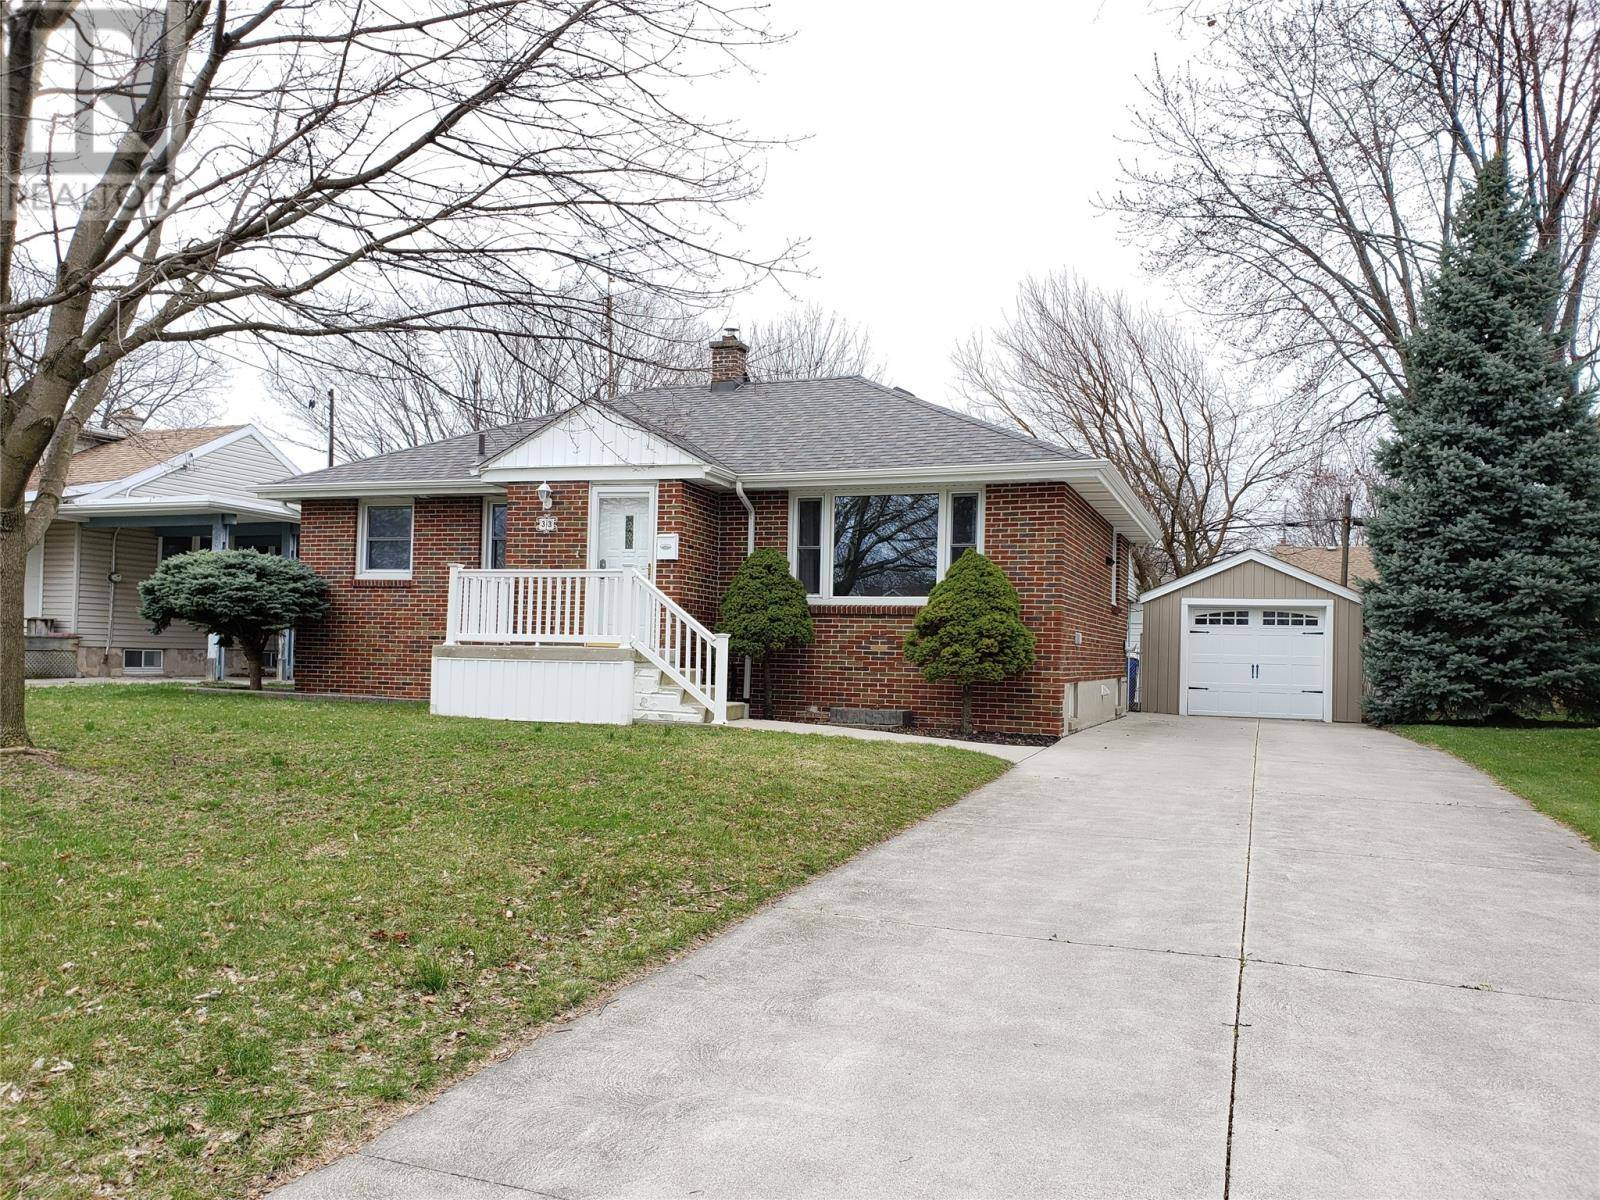 House for sale at 33 Mcgeorge Ave Chatham Ontario - MLS: 20003852